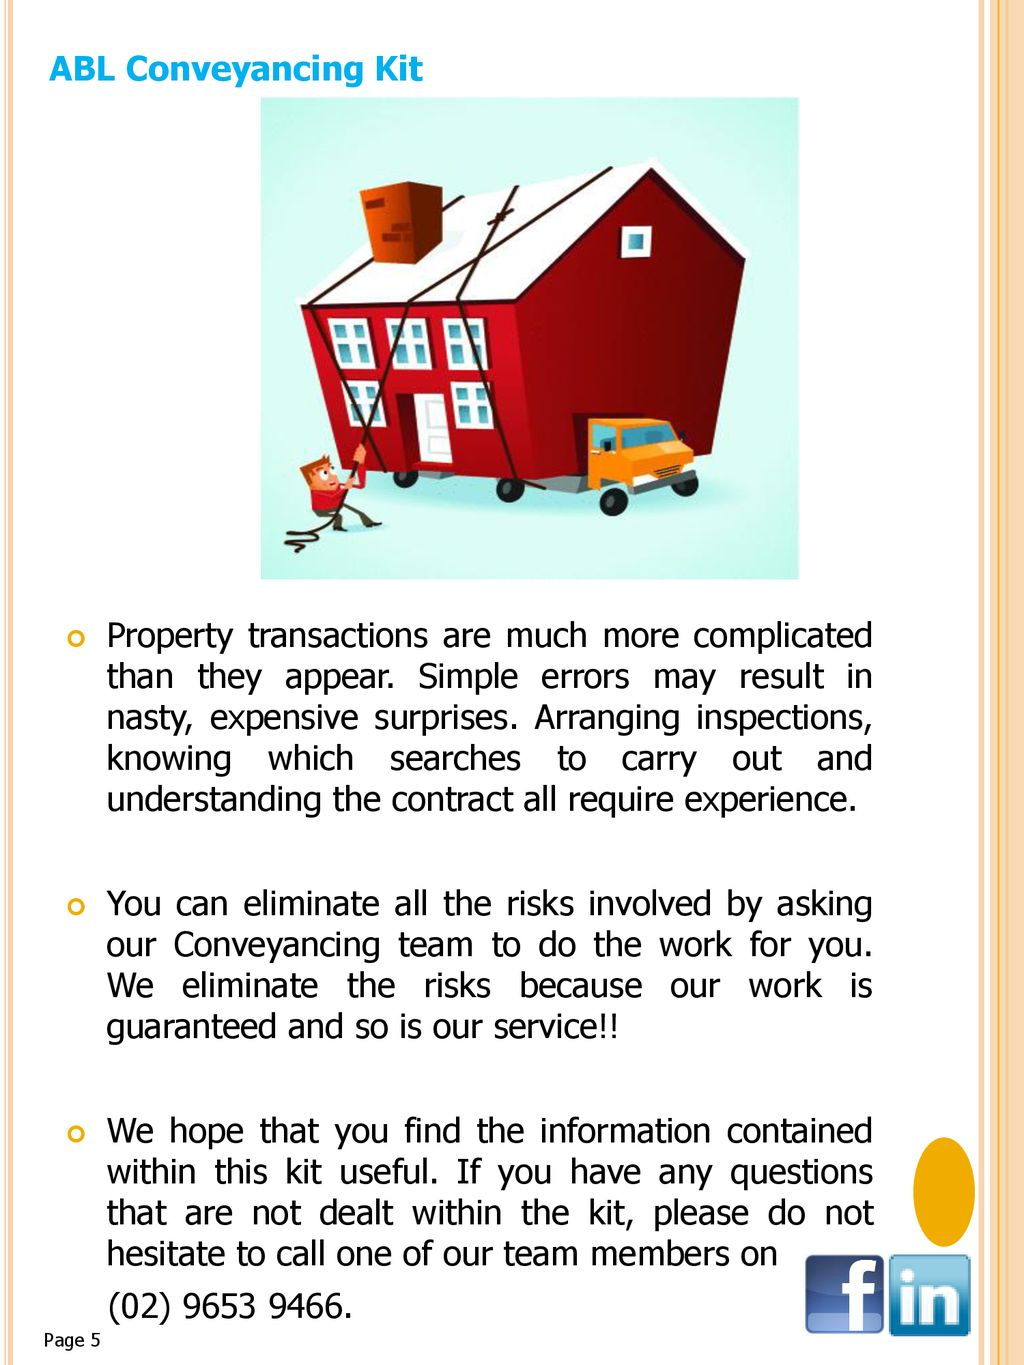 Anderson boemi lawyers ppt download abl conveyancing kit solutioingenieria Images